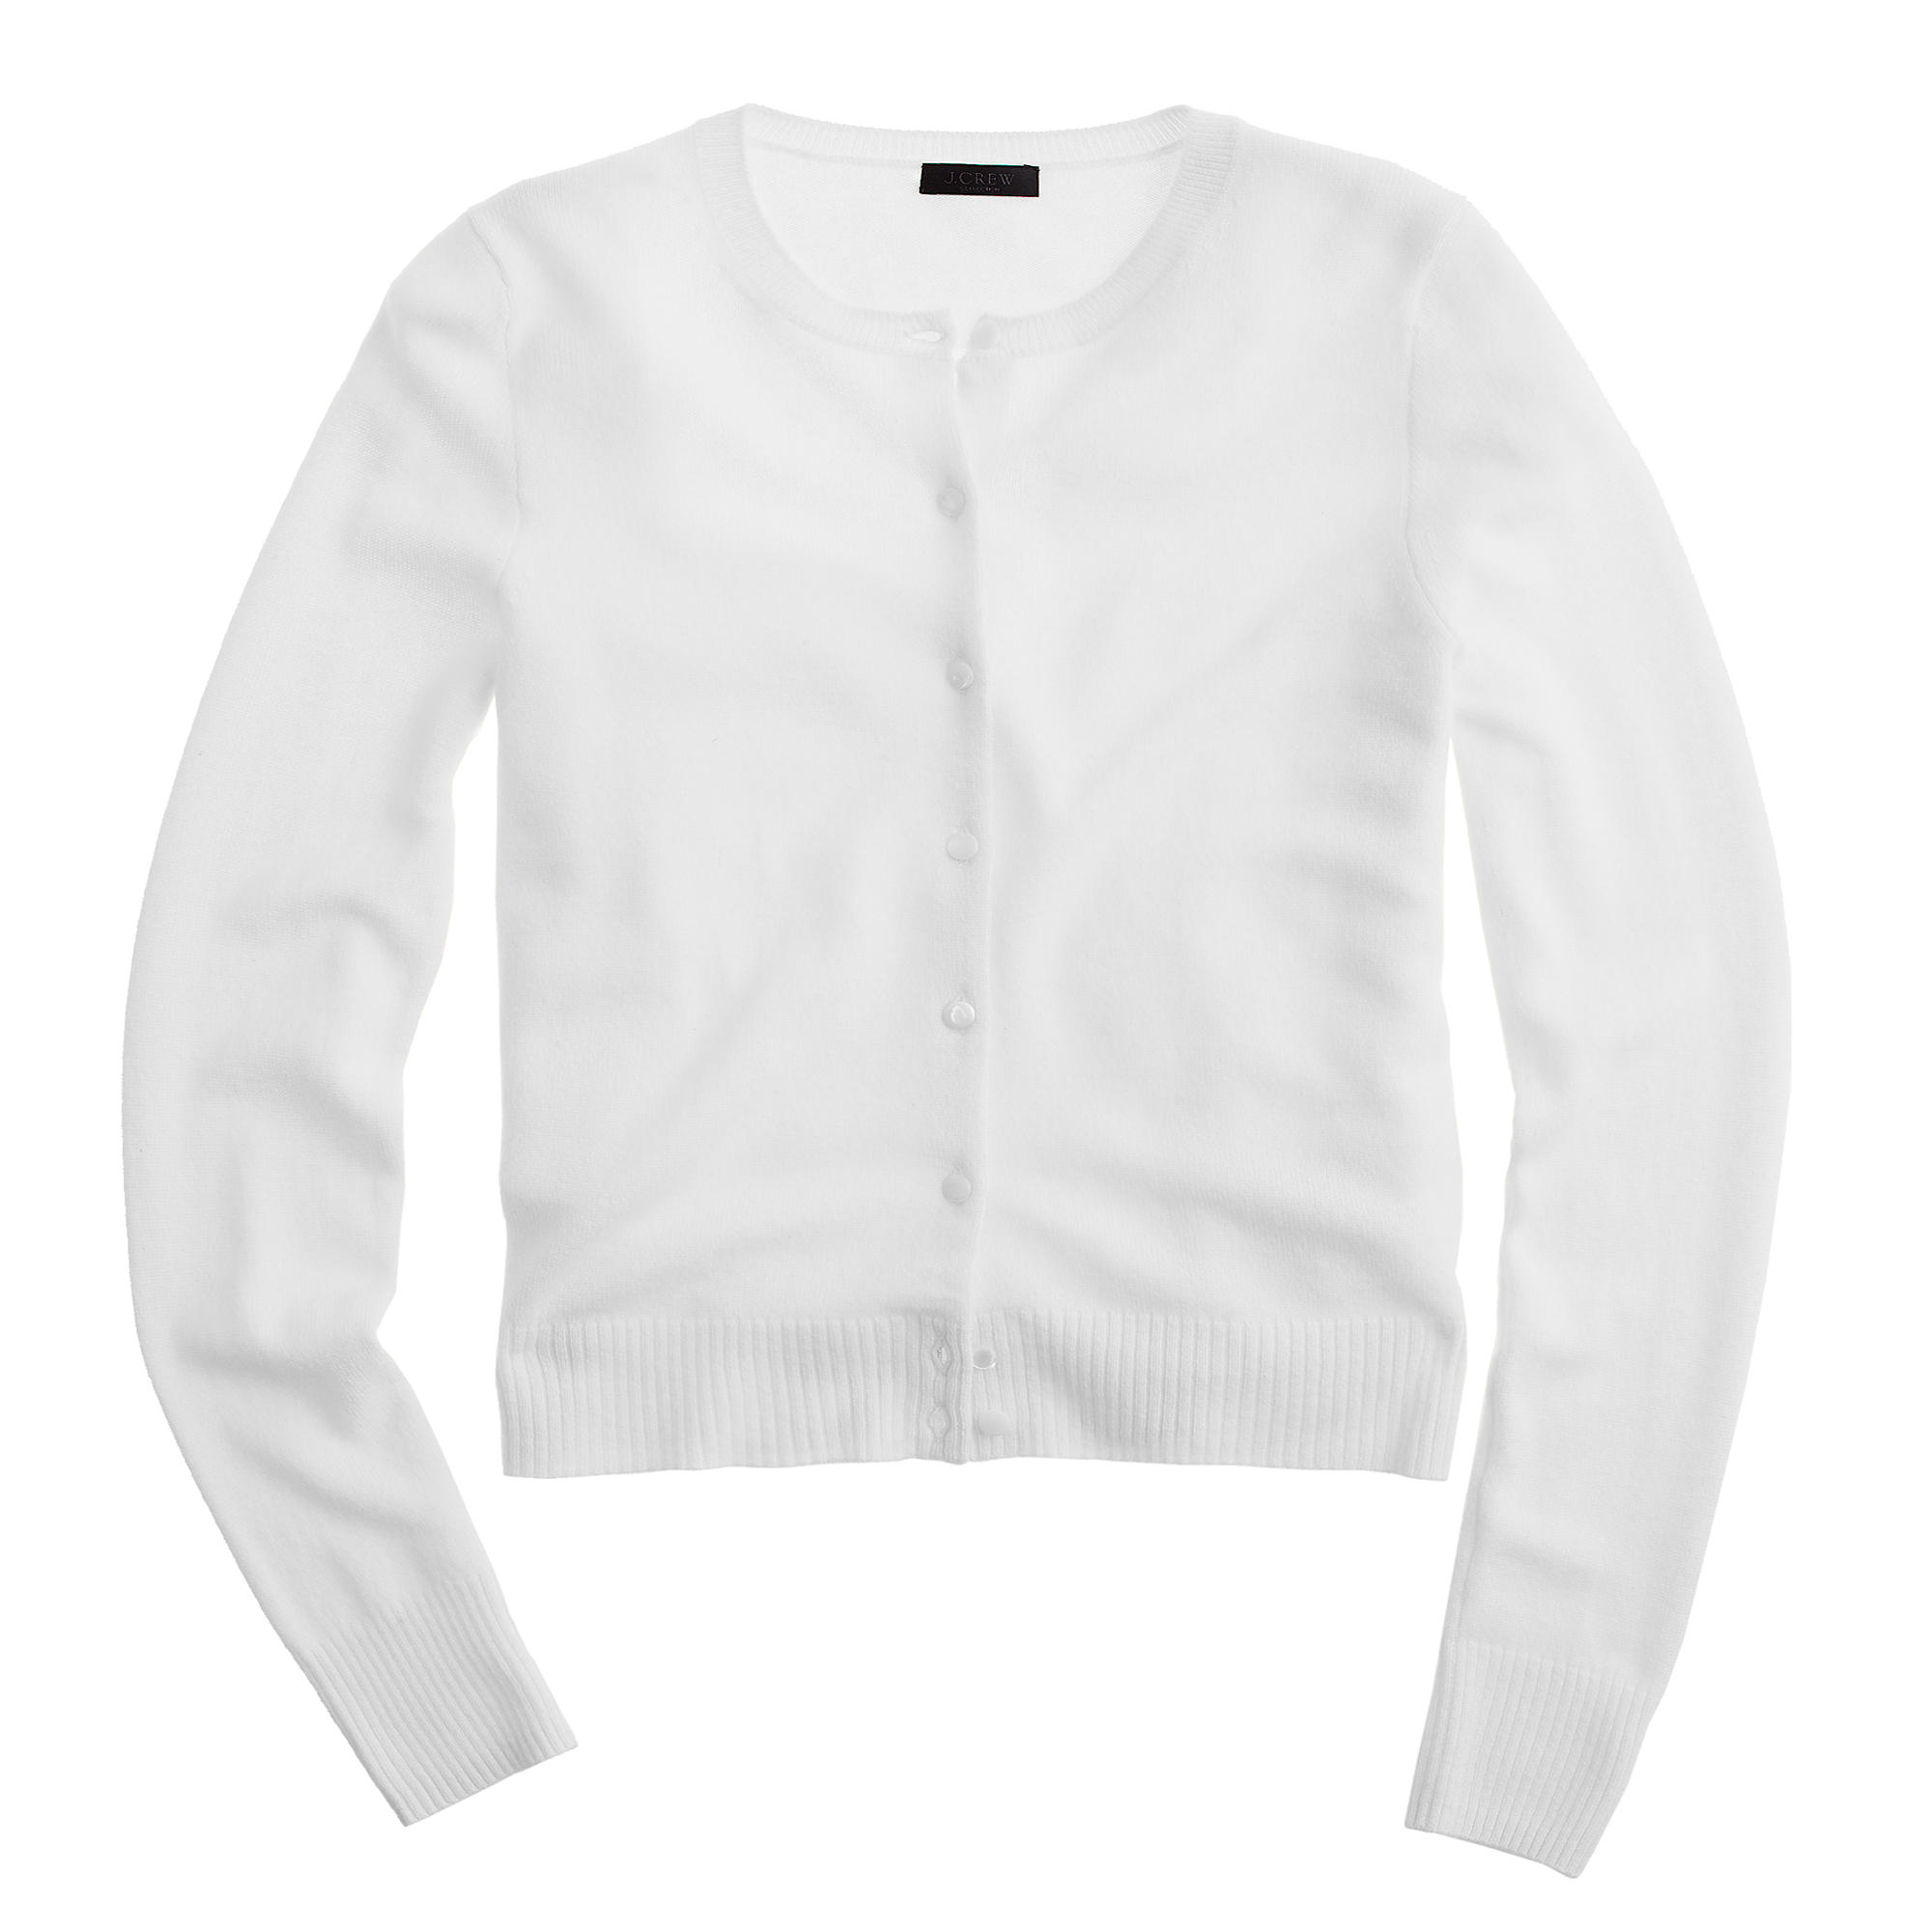 J.crew Collection Cashmere Cardigan Sweater in White | Lyst